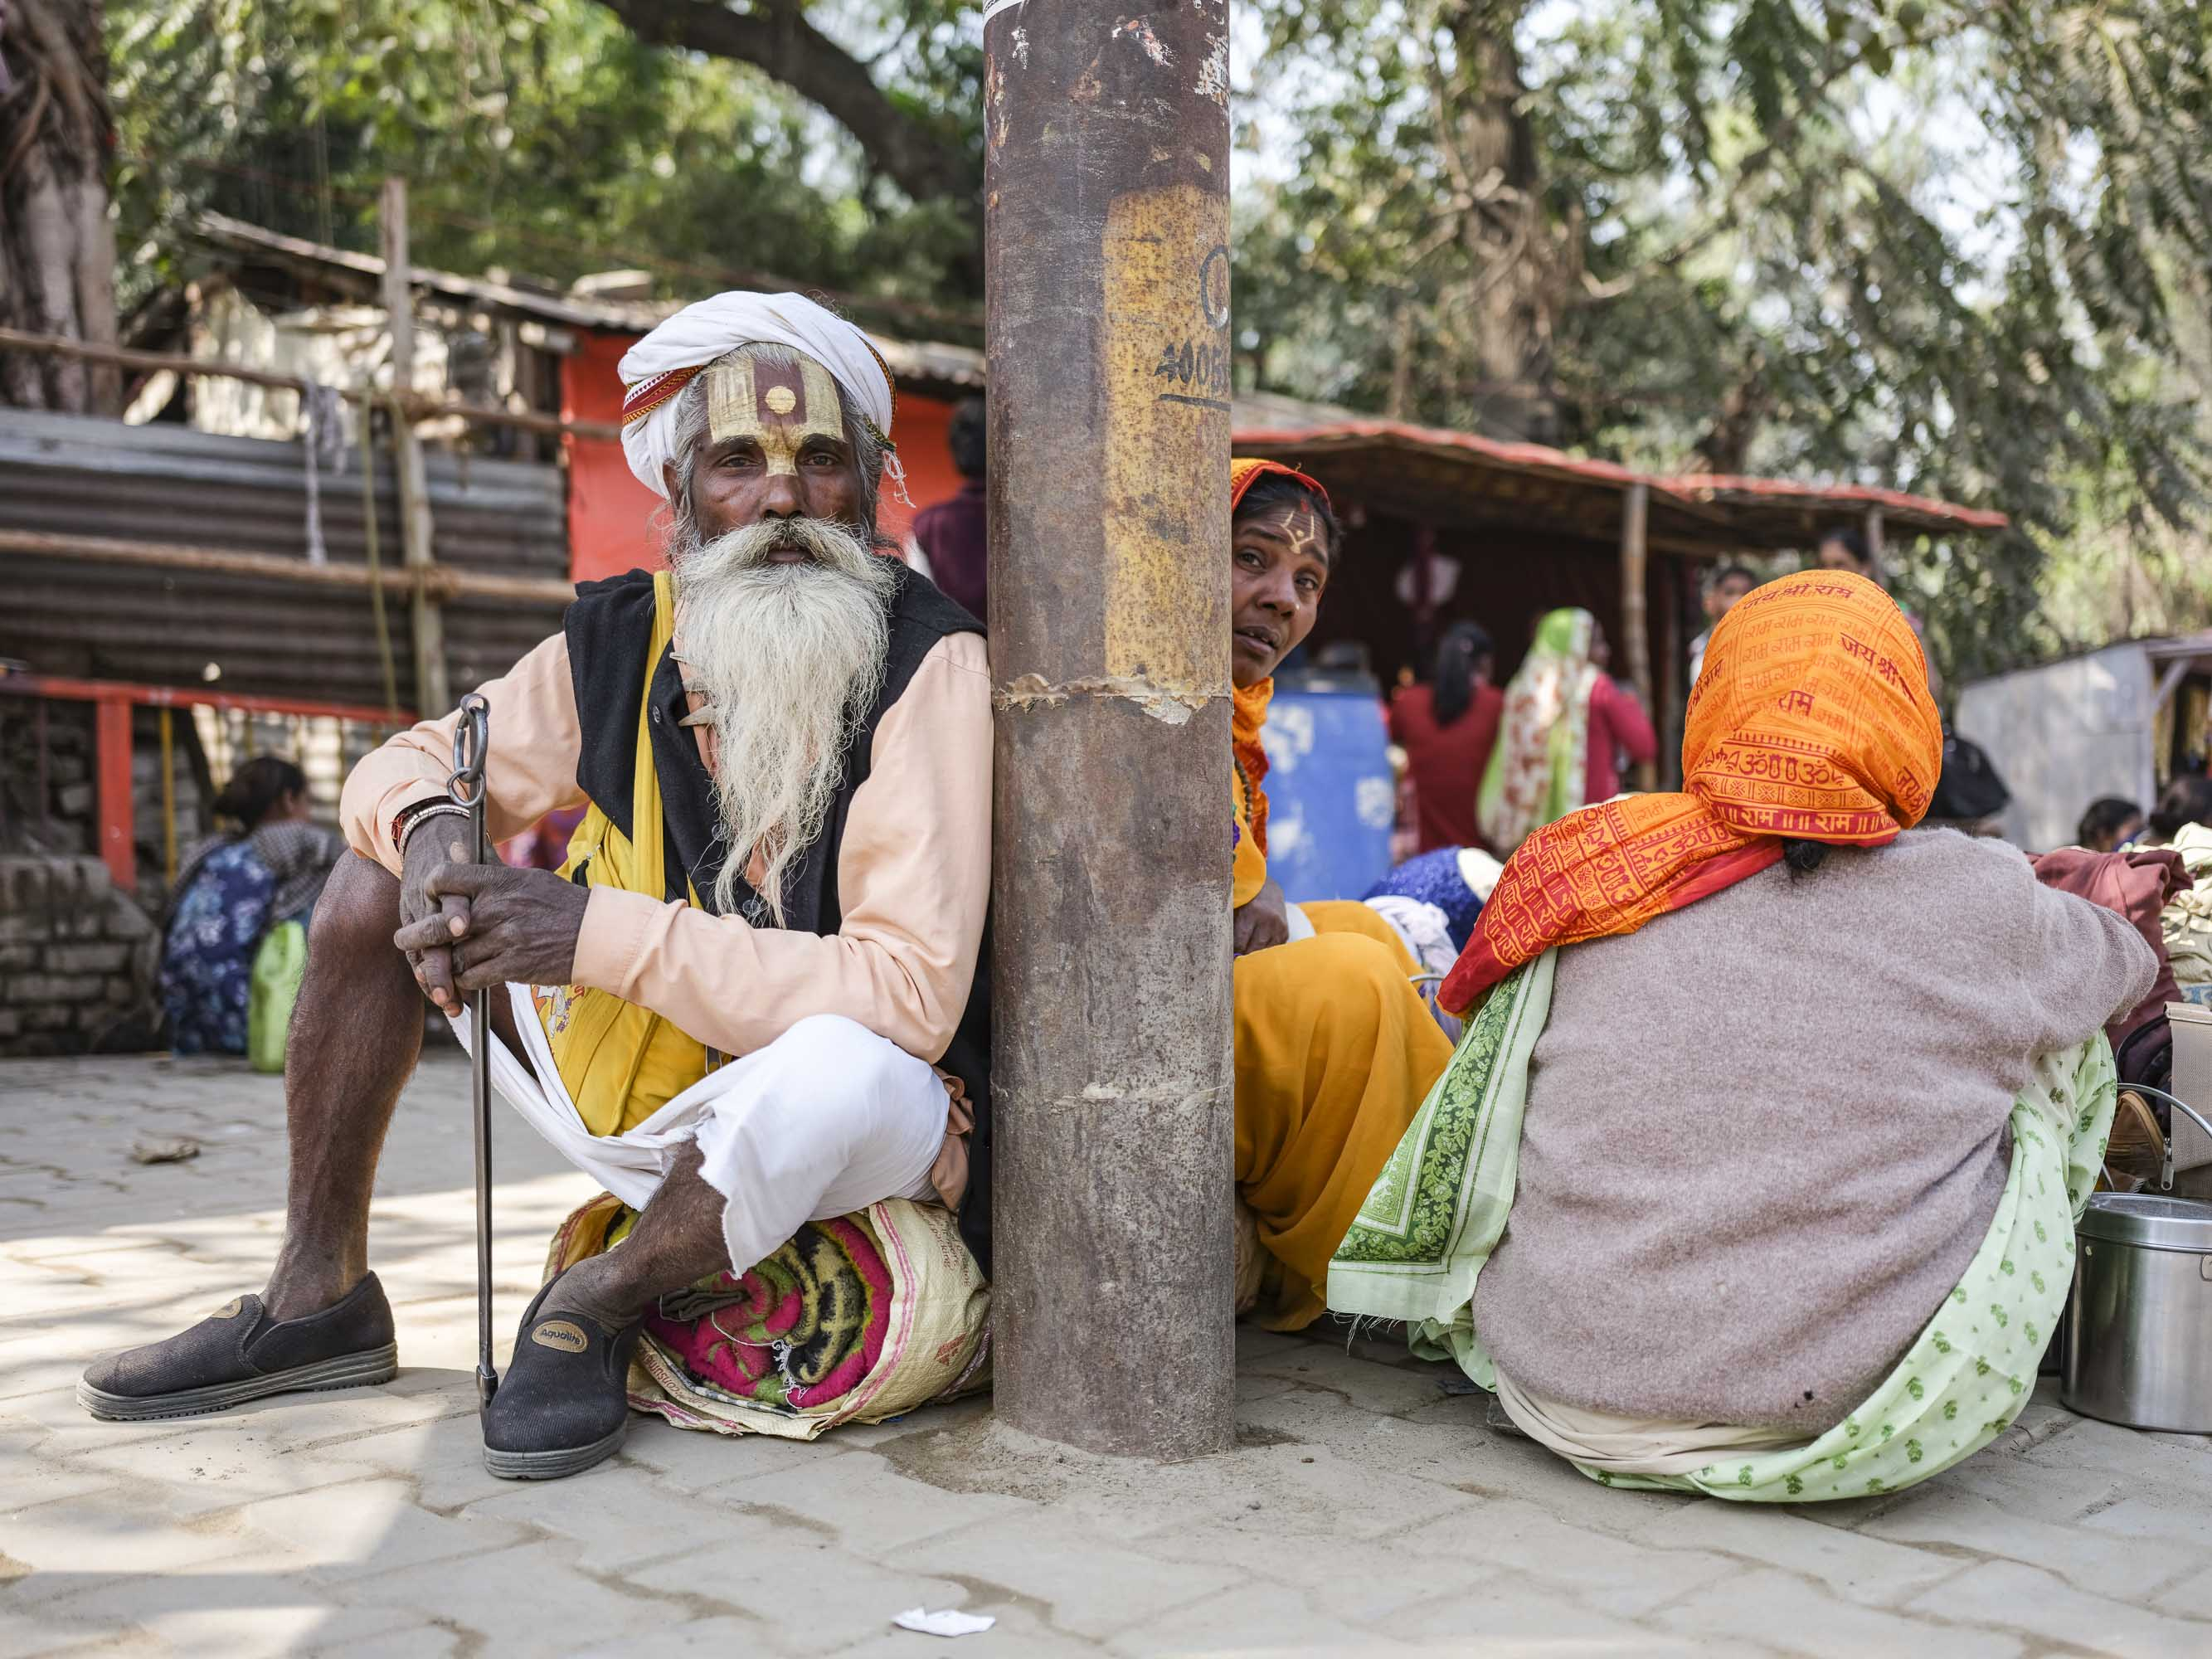 family waiting tug tuk pilgrims Kumbh mela 2019 India Allahabad Prayagraj Ardh hindu religious Festival event rivers photographer jose jeuland photography